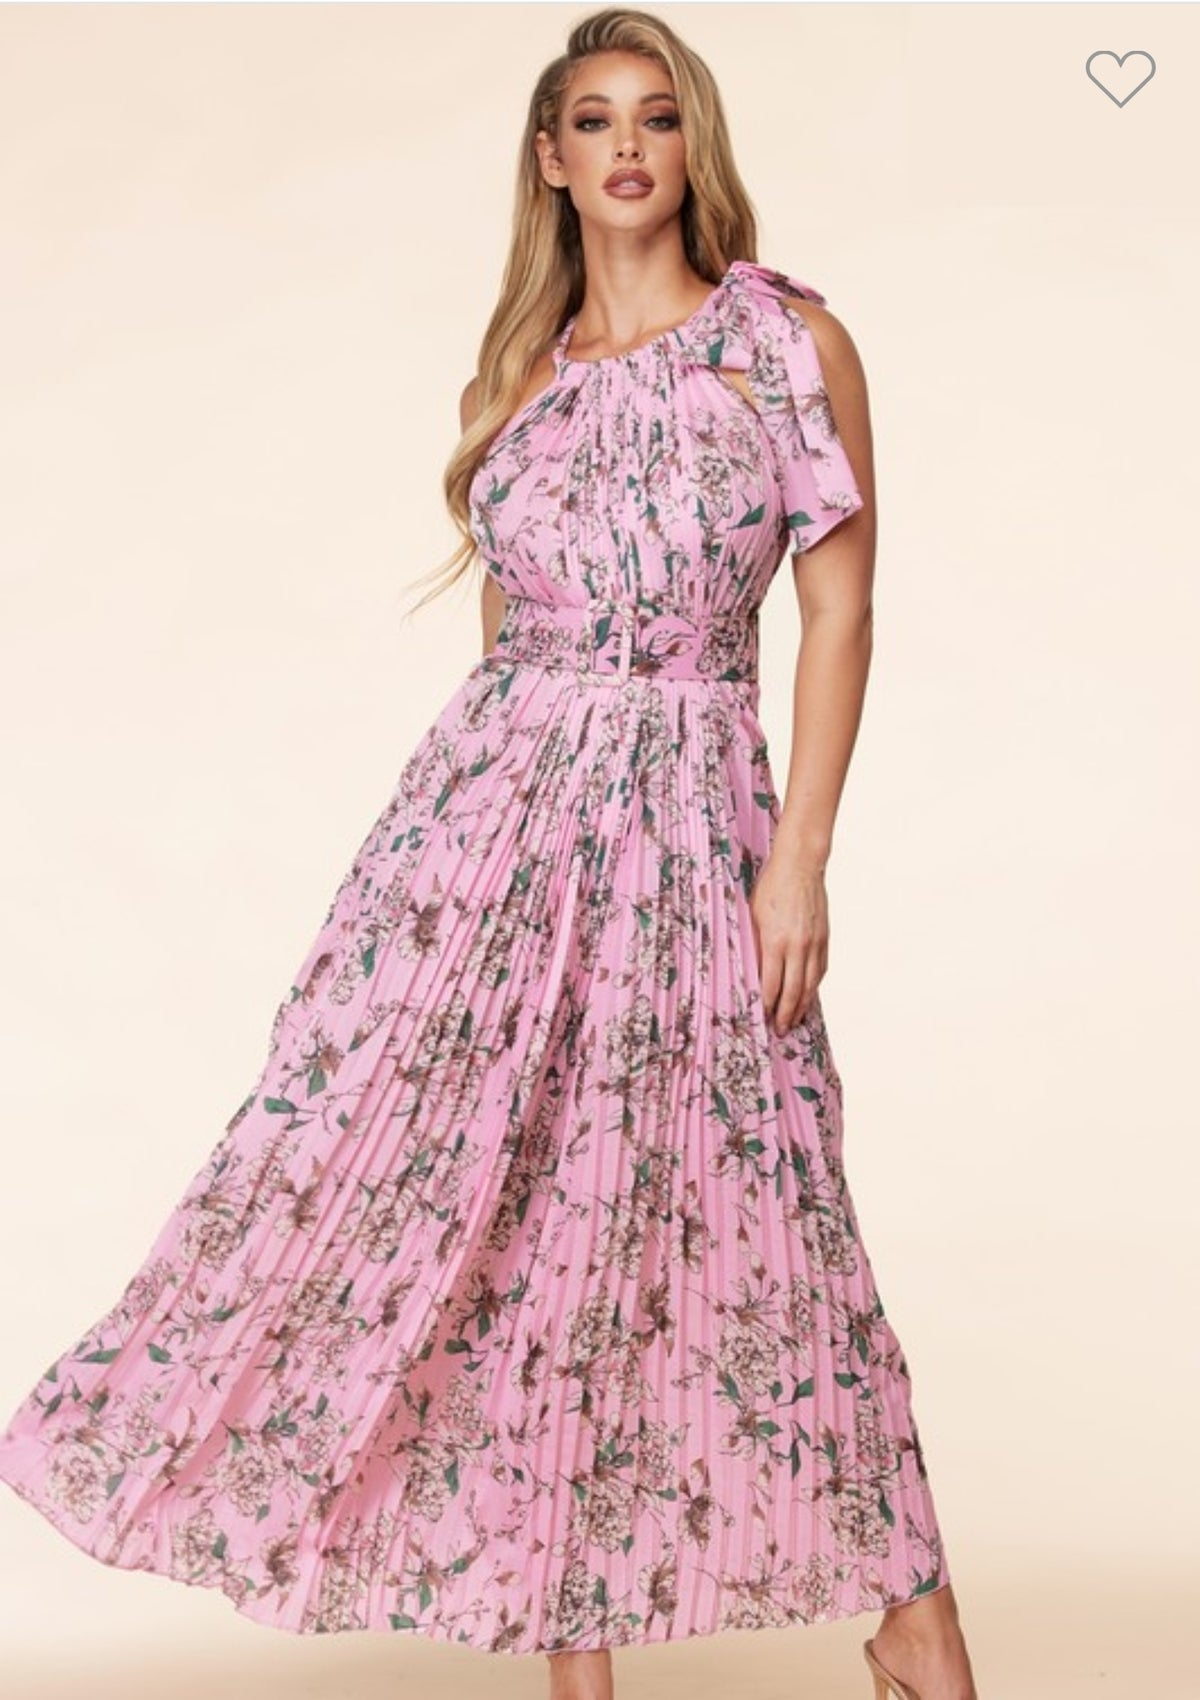 LADY LIKE PINK FLORAL DRESS